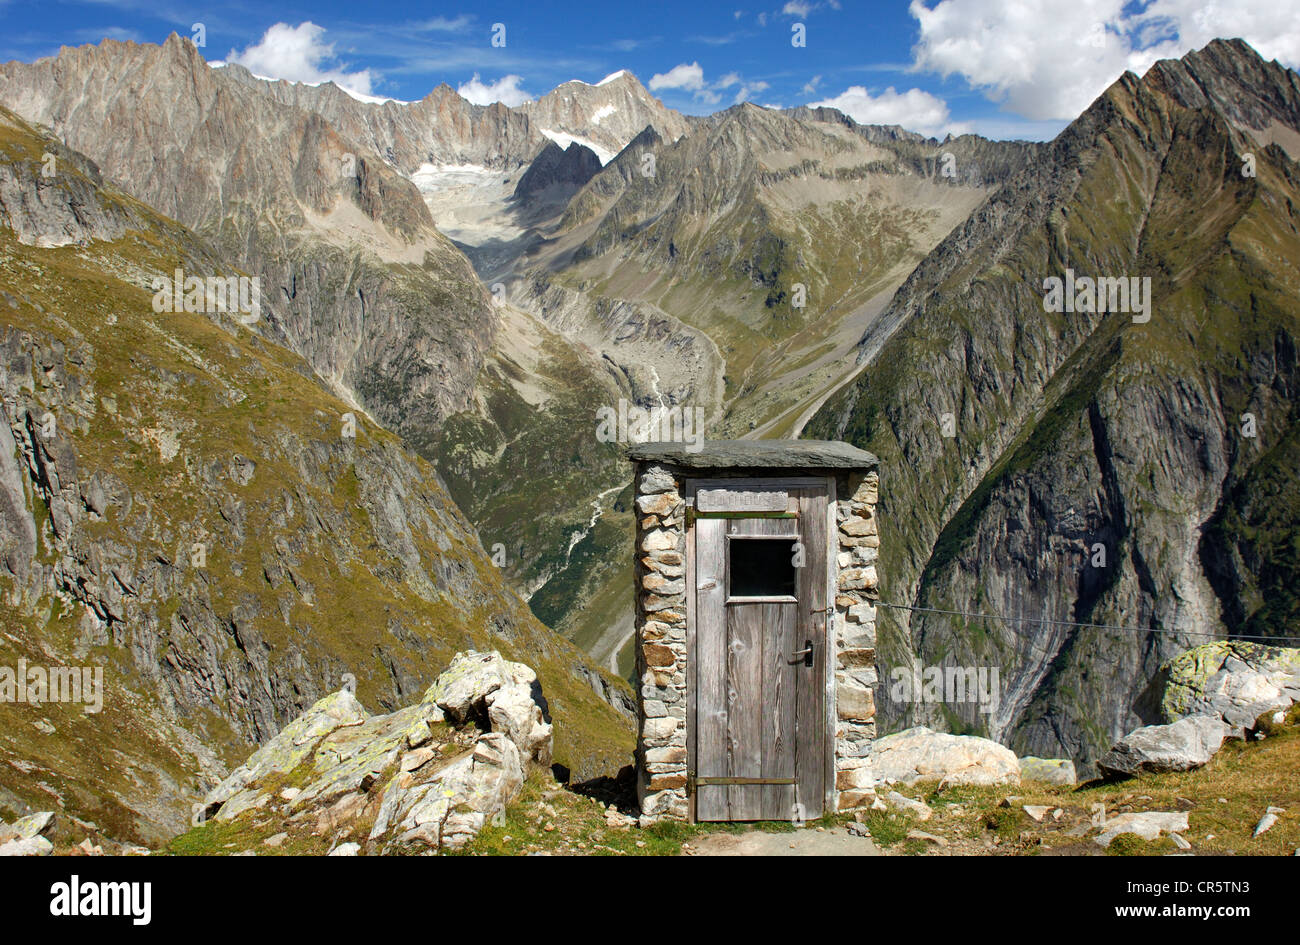 Swiss Mountain House toilet house with the best view in the swiss alps, wiwanni hut